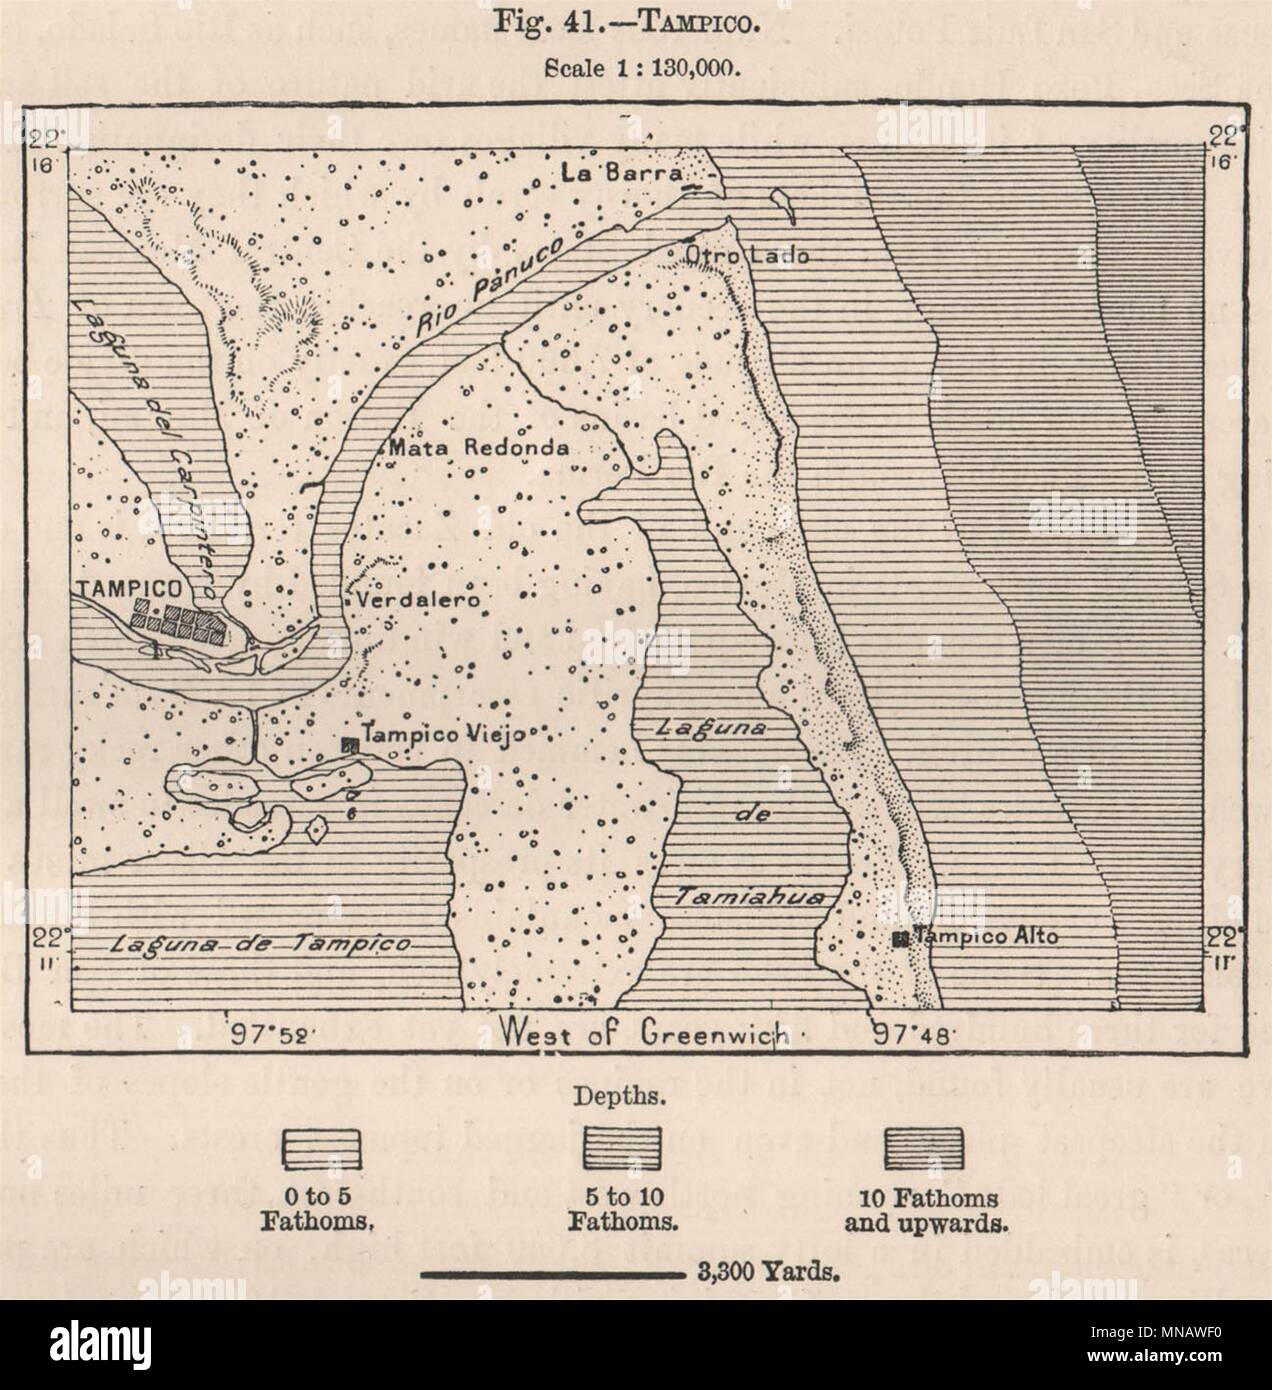 Tampico Mexico 1885 Old Antique Vintage Map Plan Chart Stock Photo